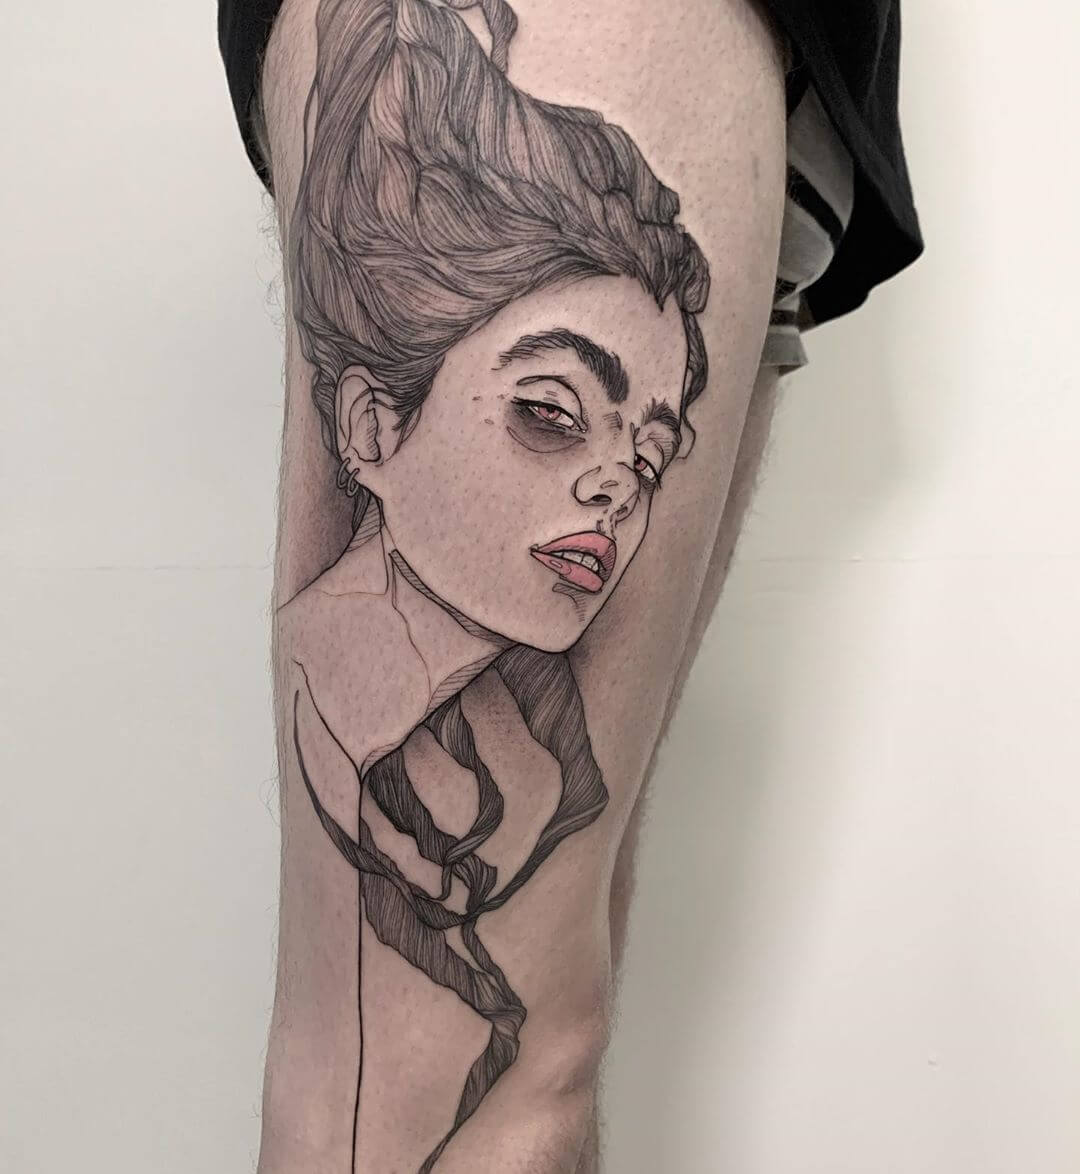 Detailed linework female portait tattoo by La Malafede